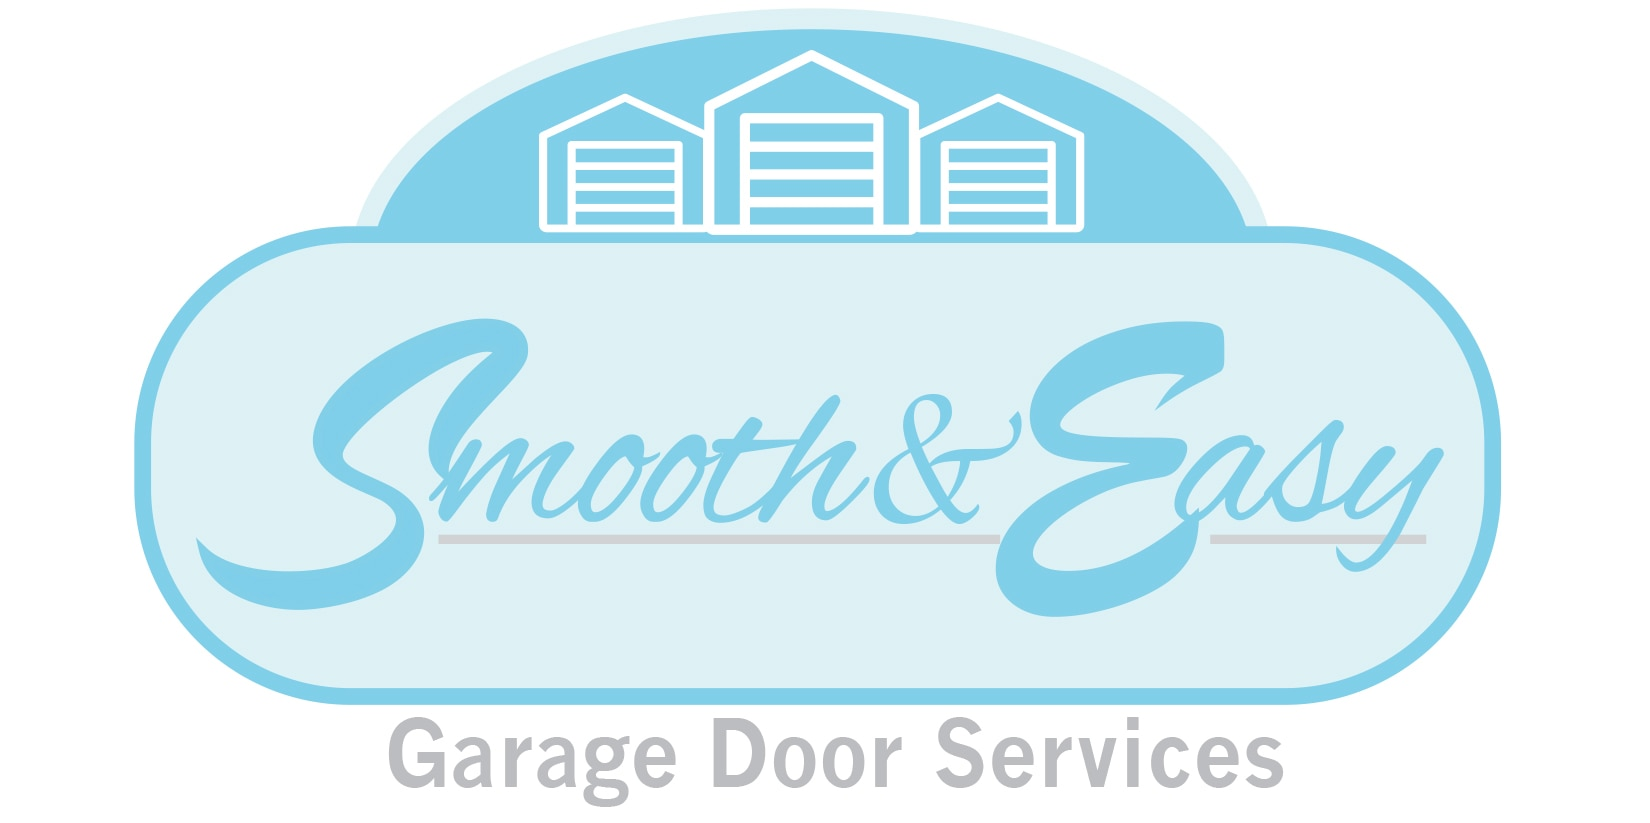 Smooth and Easy Garage Door Services logo